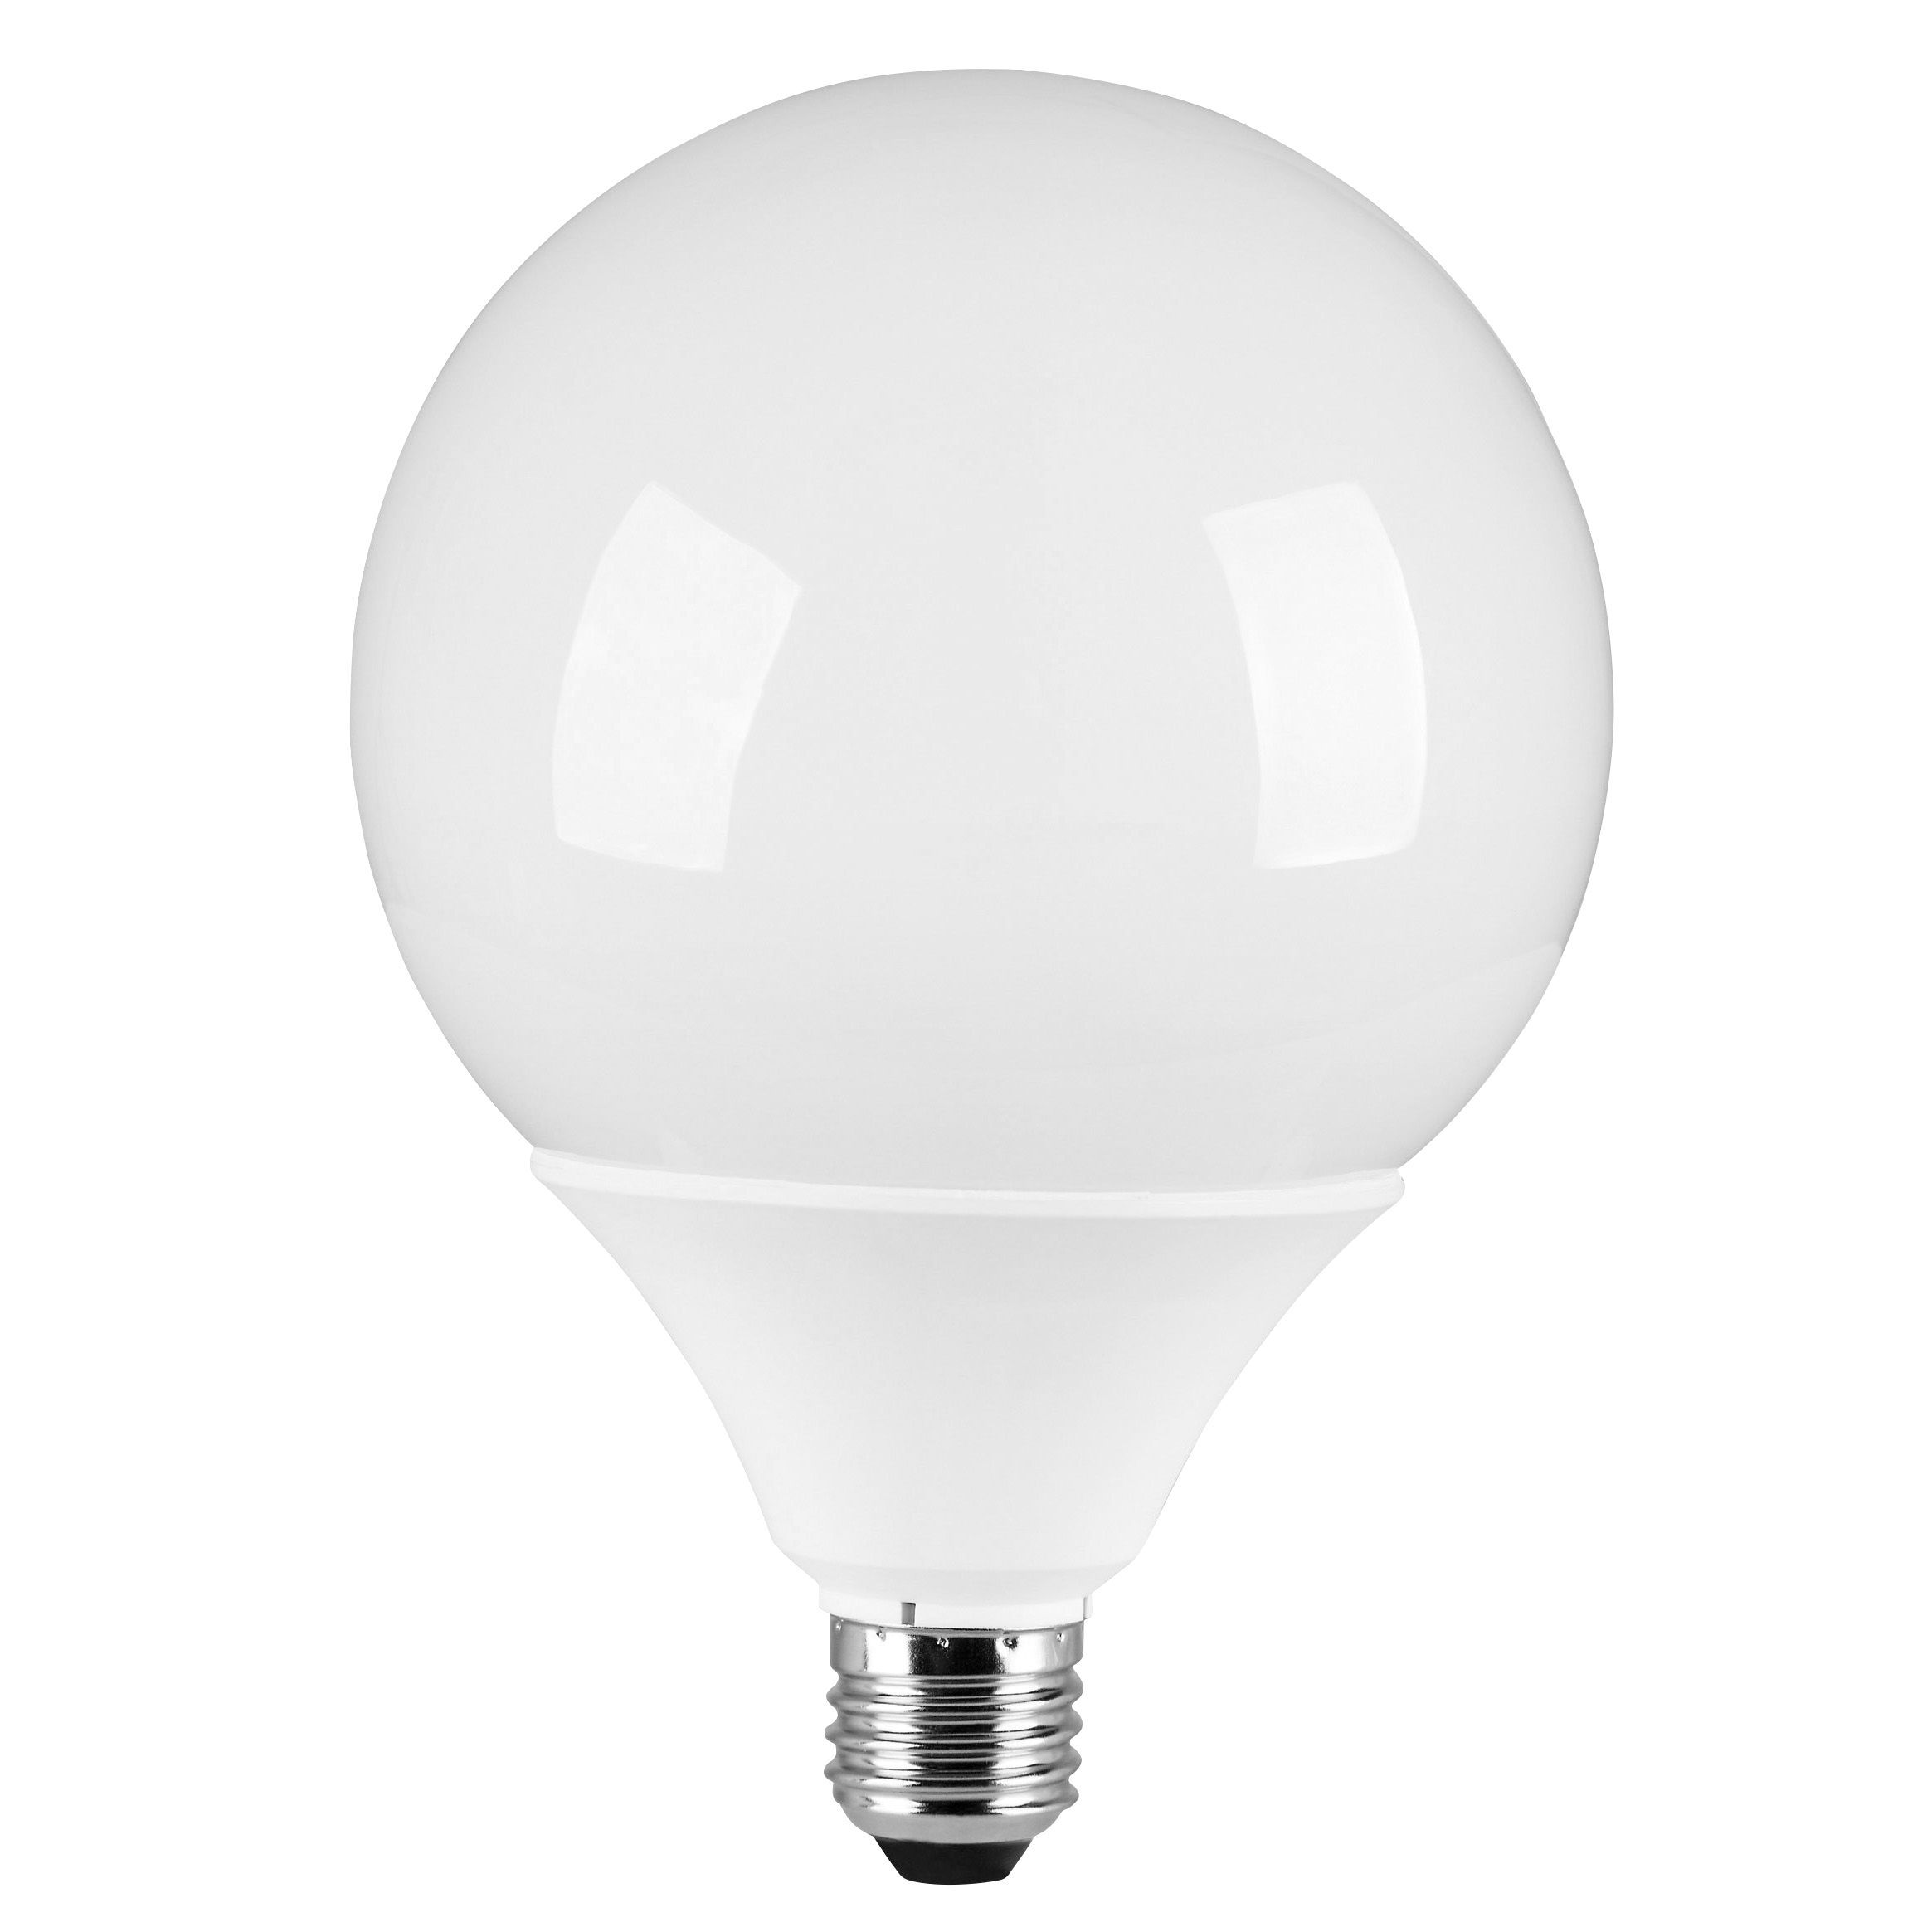 buyphilips rsp philips bulb main bulbs johnlewis pdp john classic lewis at com can led frosted online light es